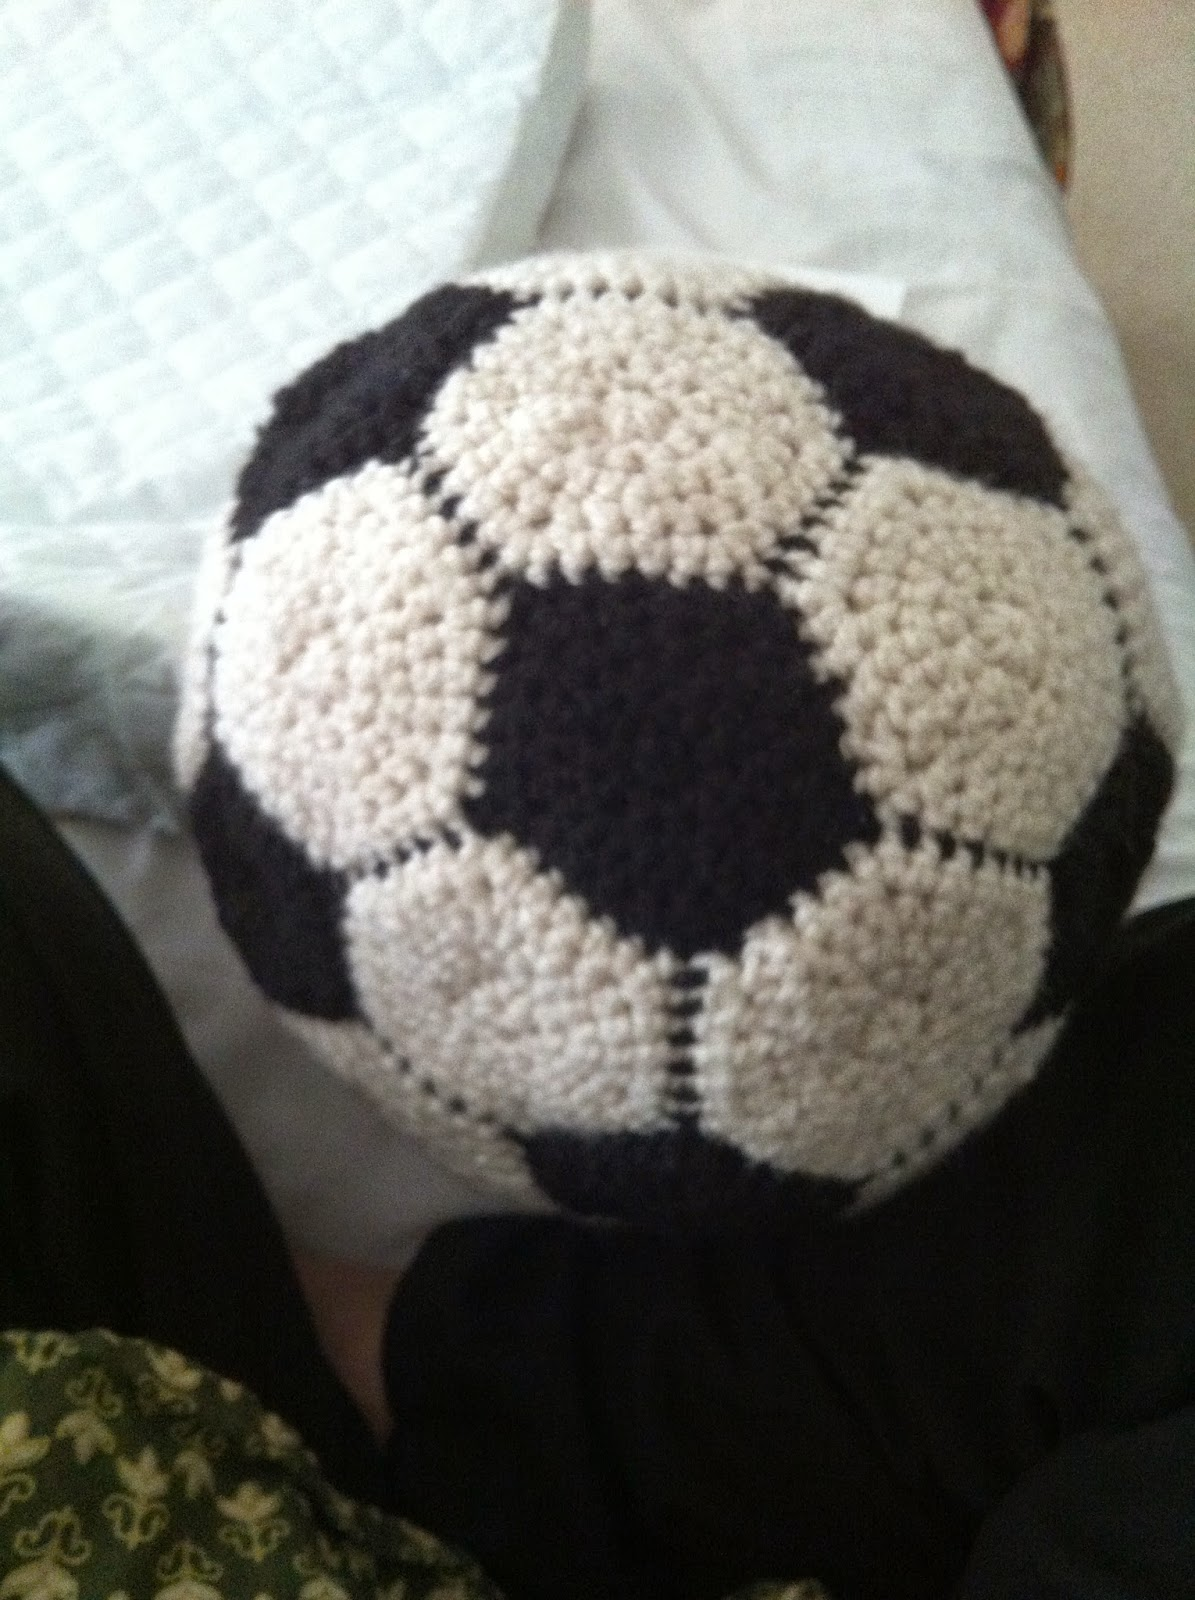 Free Amigurumi Ball Pattern : A Hook in Time: Easy Crochet Soccer Ball - free